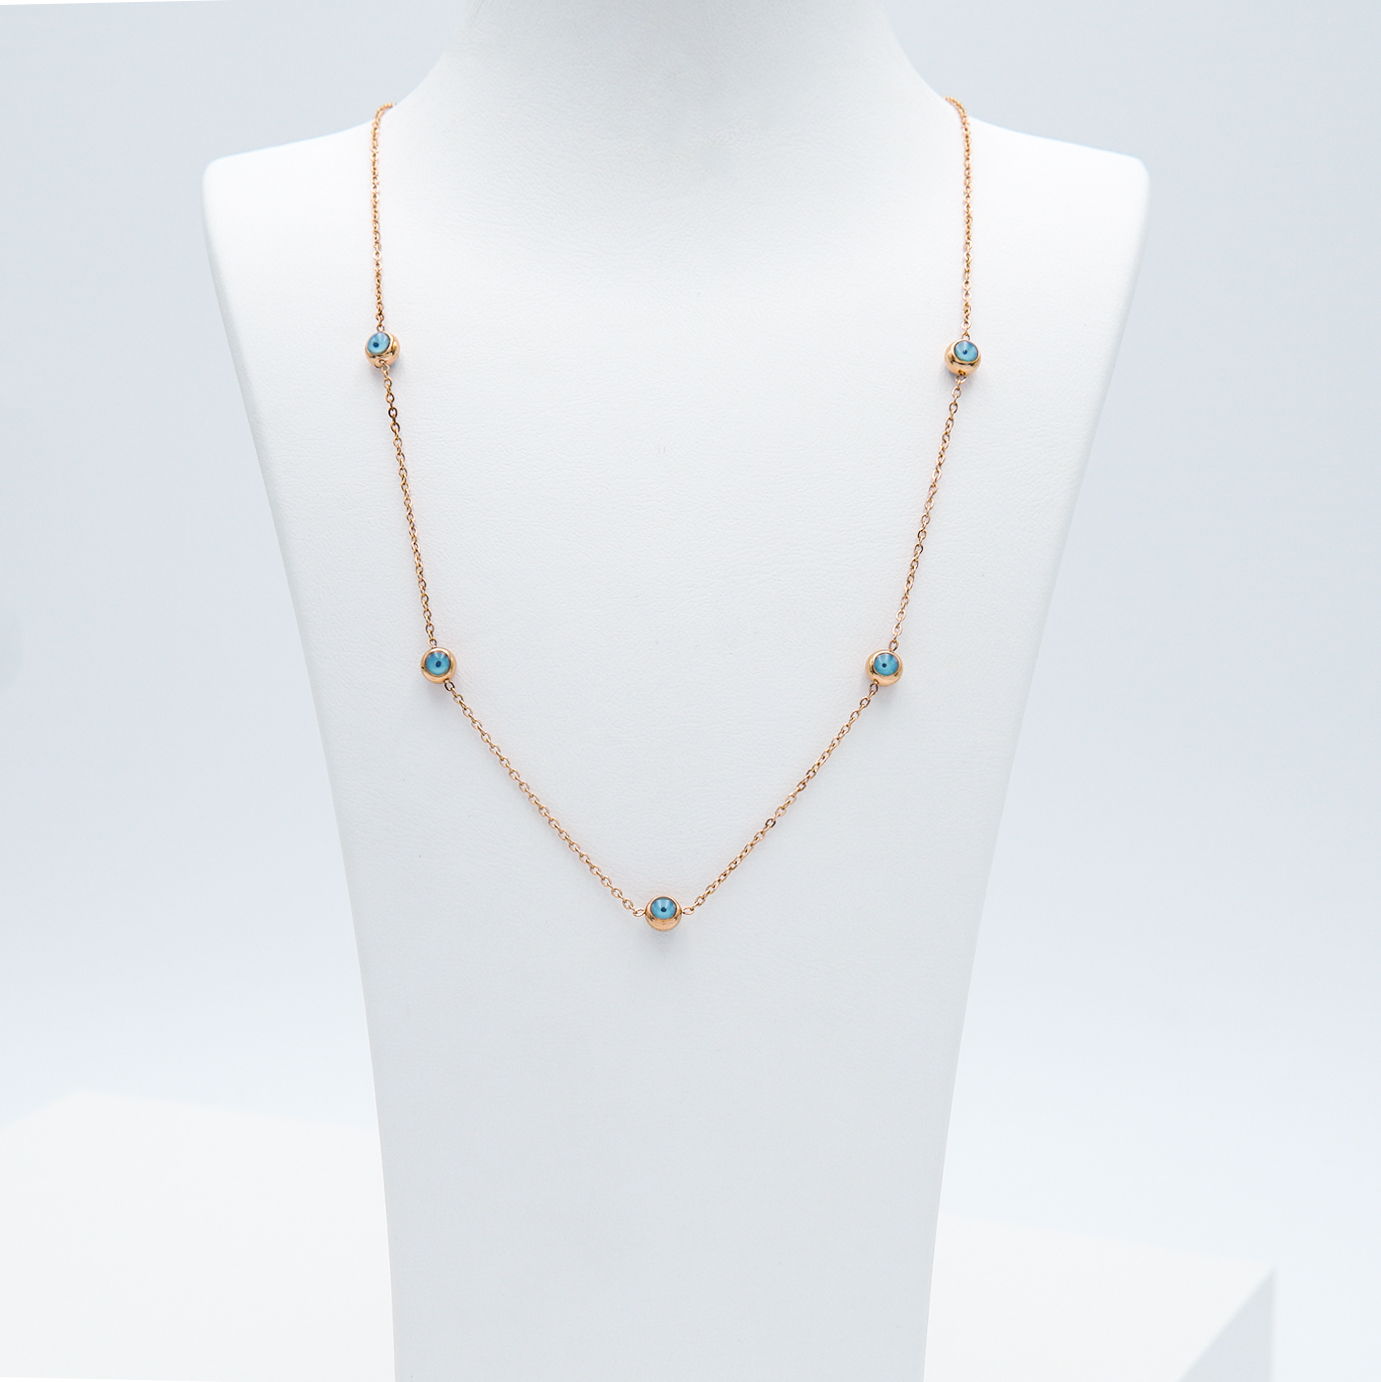 1- Onda ögat Ultimate  Rose Edition Halsband Modern and trendy Necklace and women jewelry and accessories from SWEVALI fashion Sweden